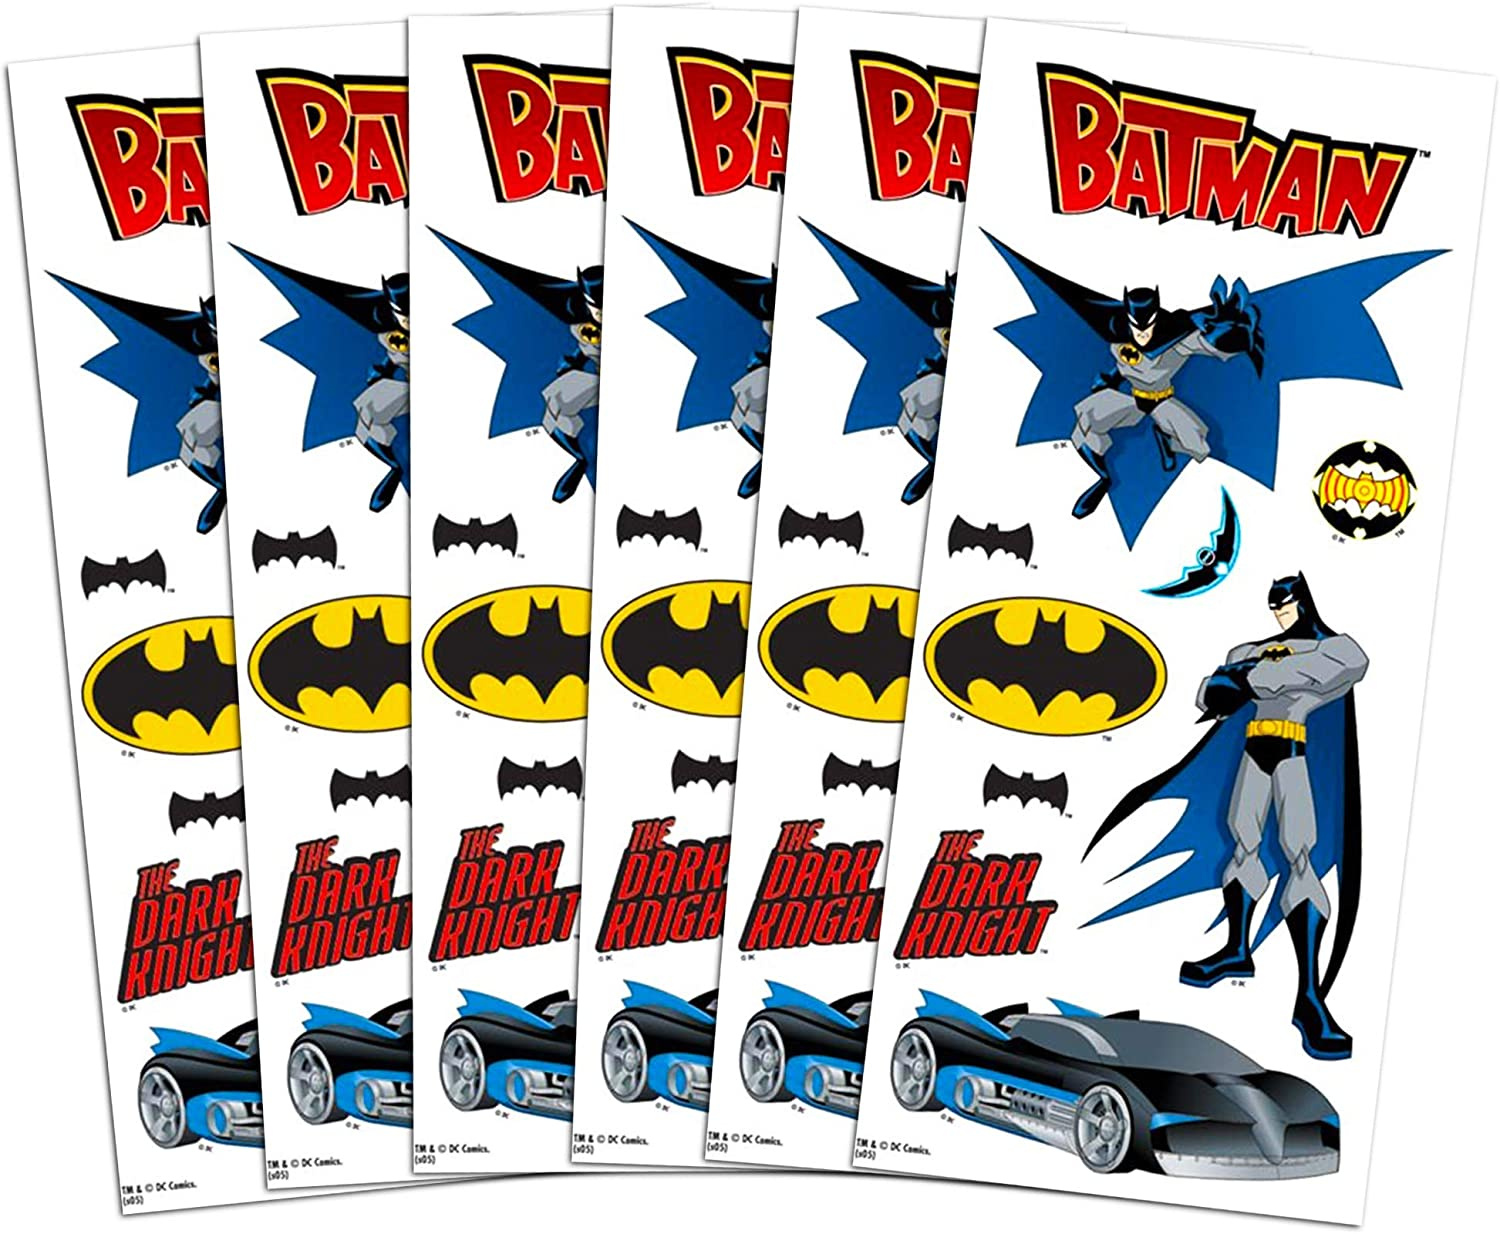 Over 400 Batman Stickers 24 Batman Party Favors Sticker Sheets Batman Sticker Playset DC Comics Batman Stickers Party Supplies Pack